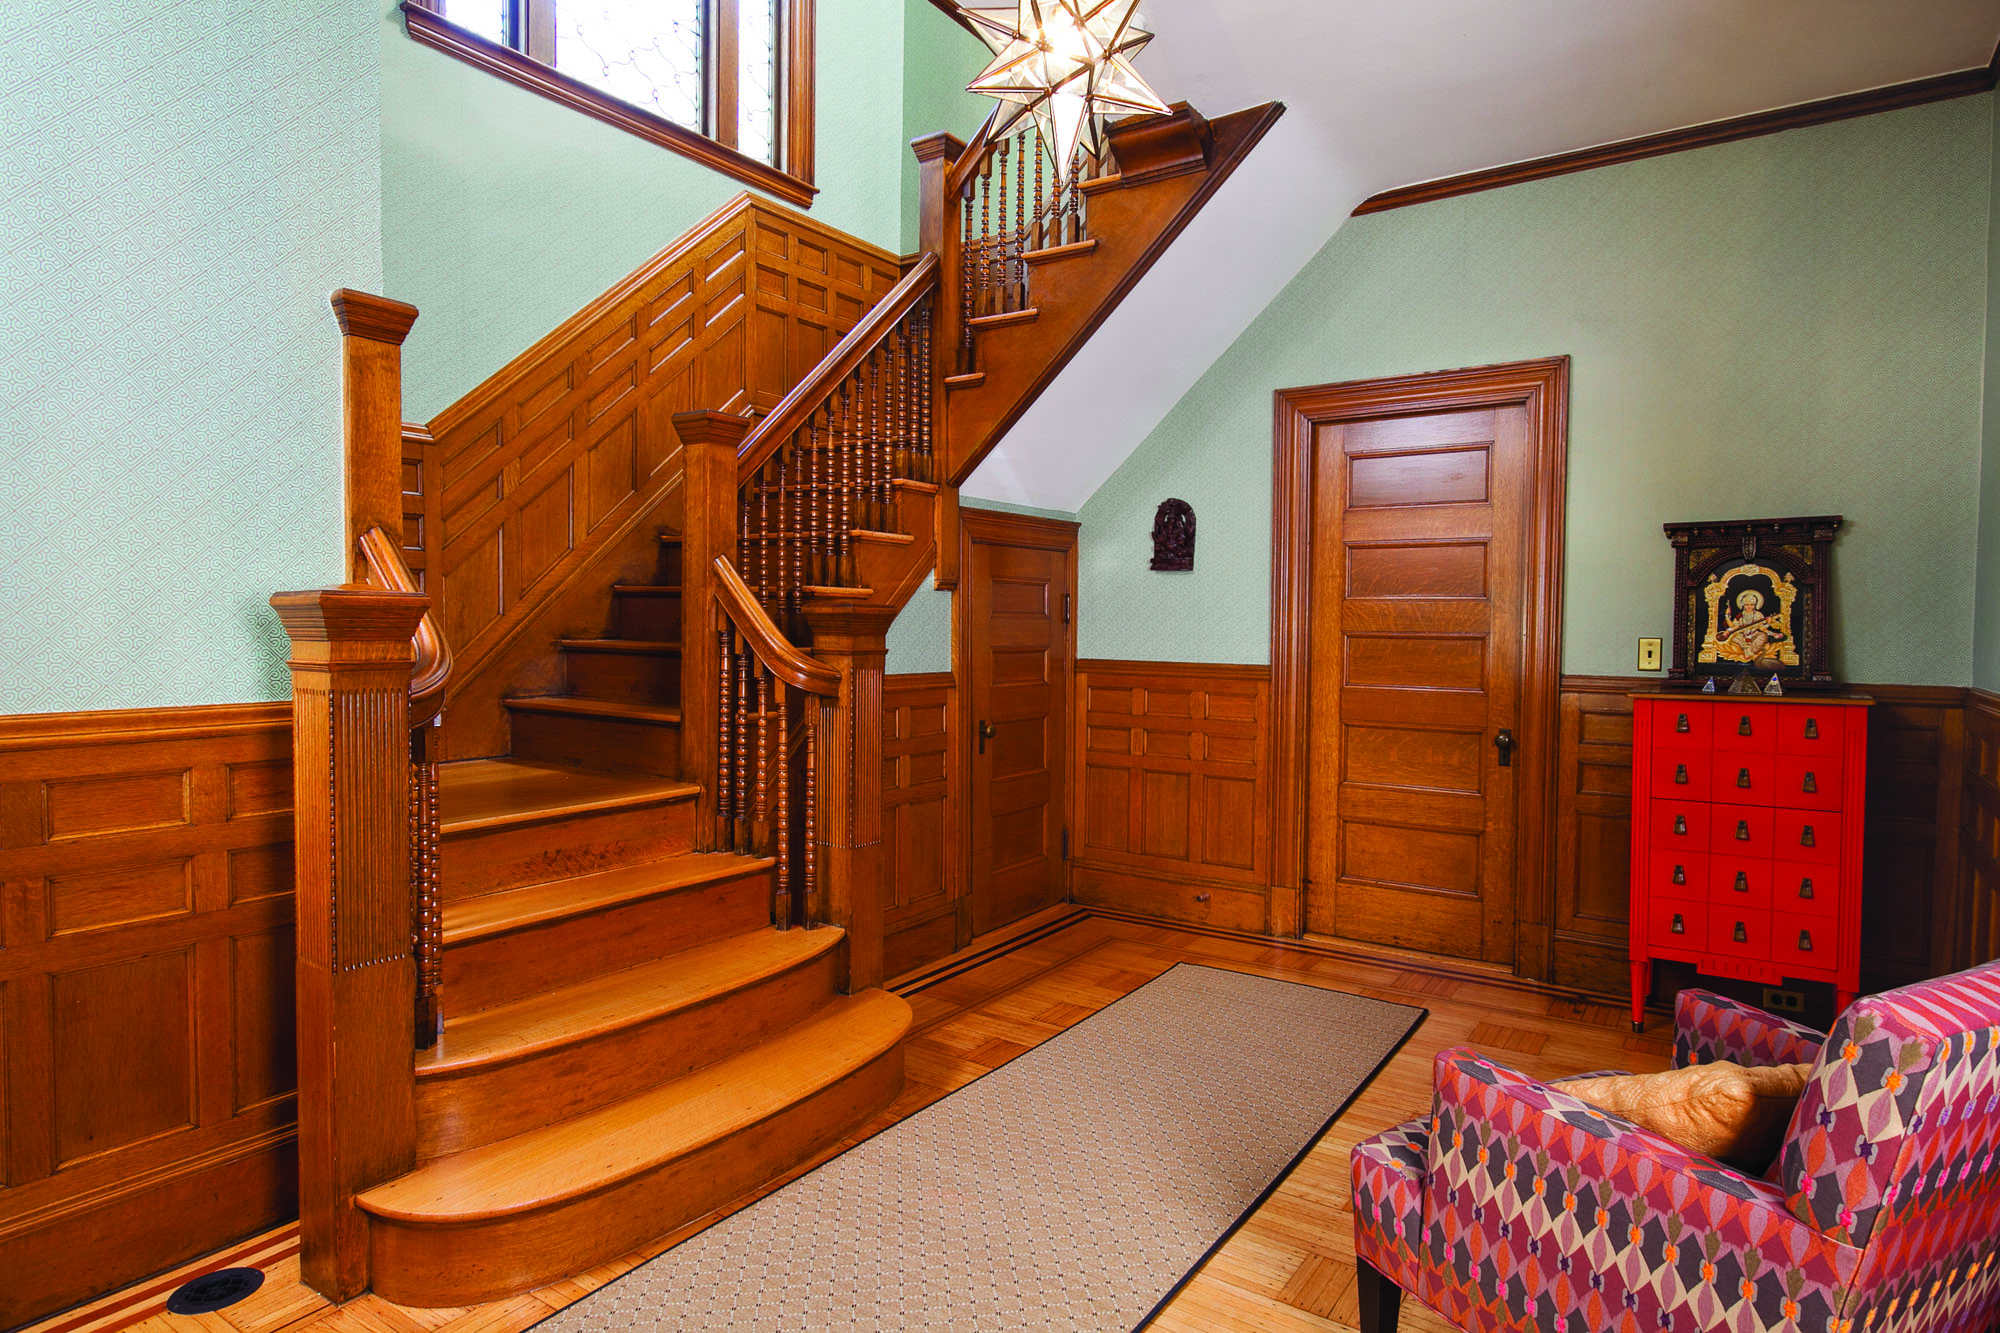 The front stair hall retains its original Queen Anne character.